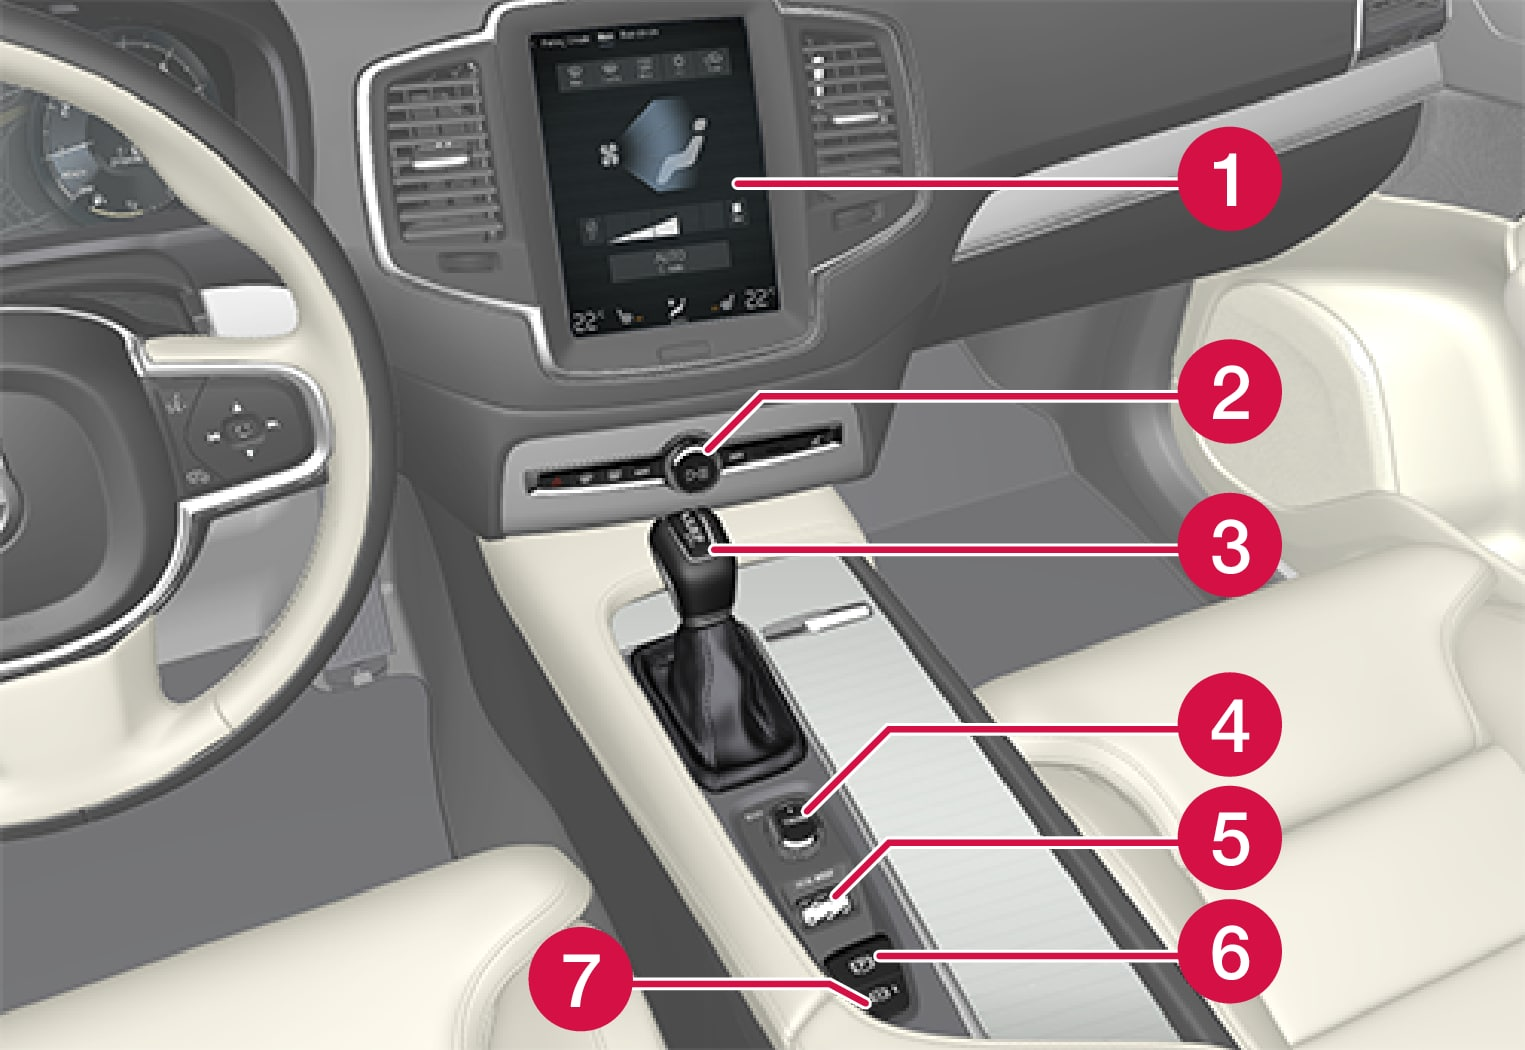 P5-1507 Instruments and controls 3 LHD